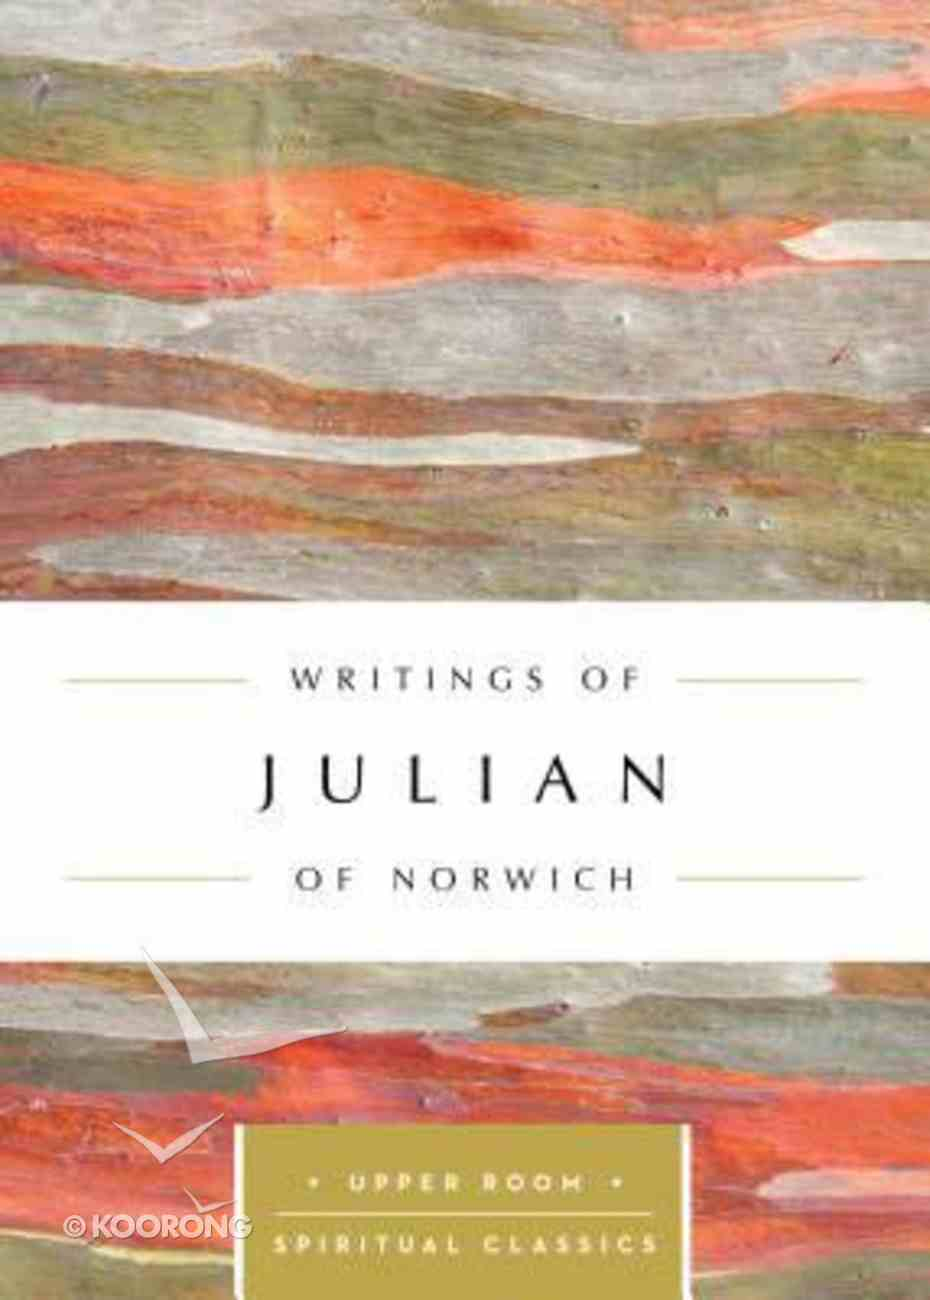 Writings of Julian of Norwich (Upper Room Spiritual Classics Series) Paperback